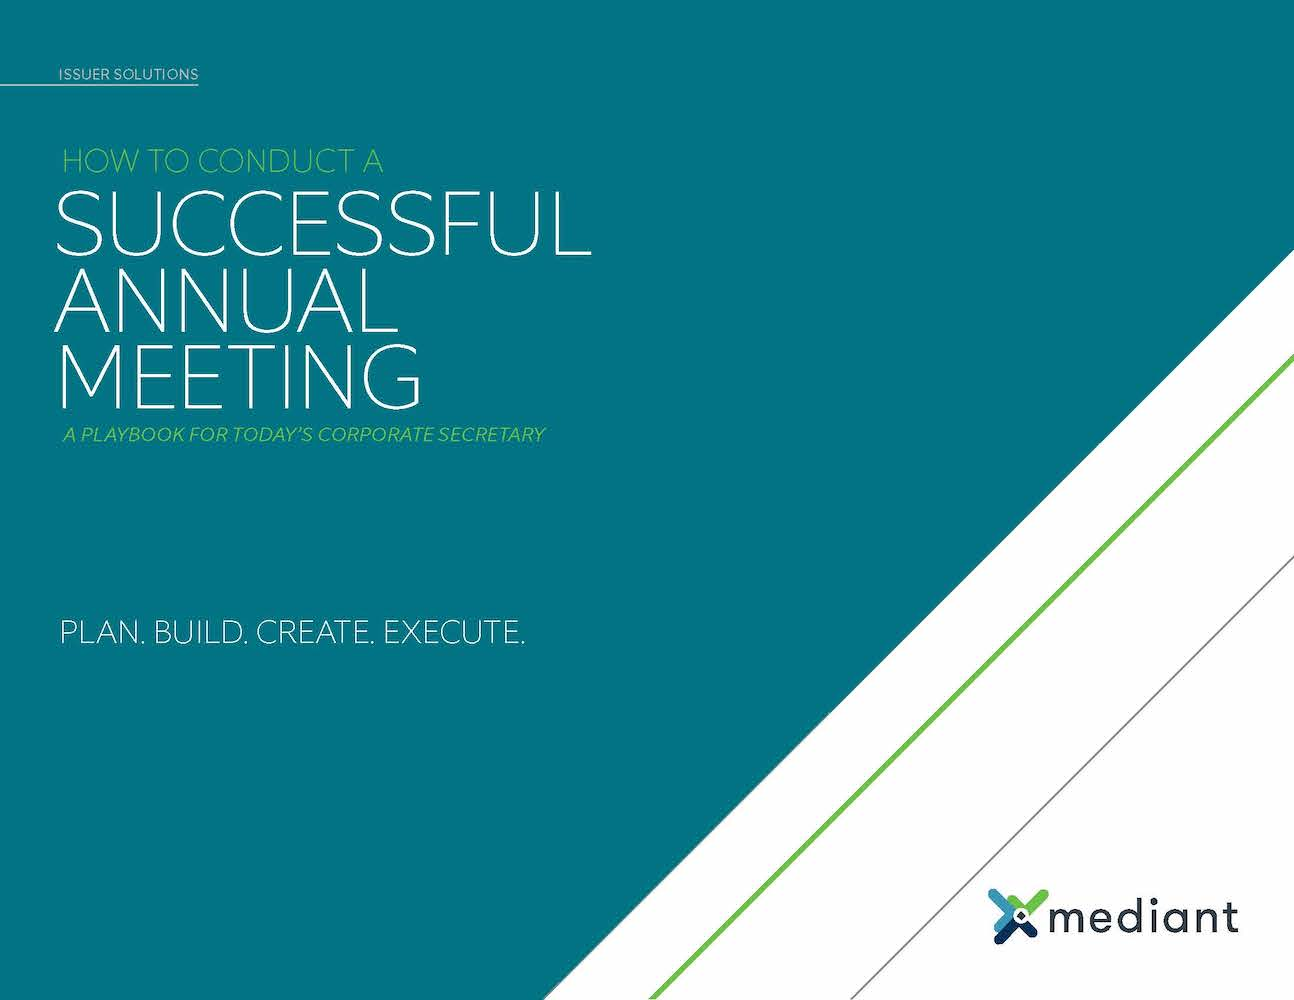 Playbook: How to Conduct a Successful Annual Meeting